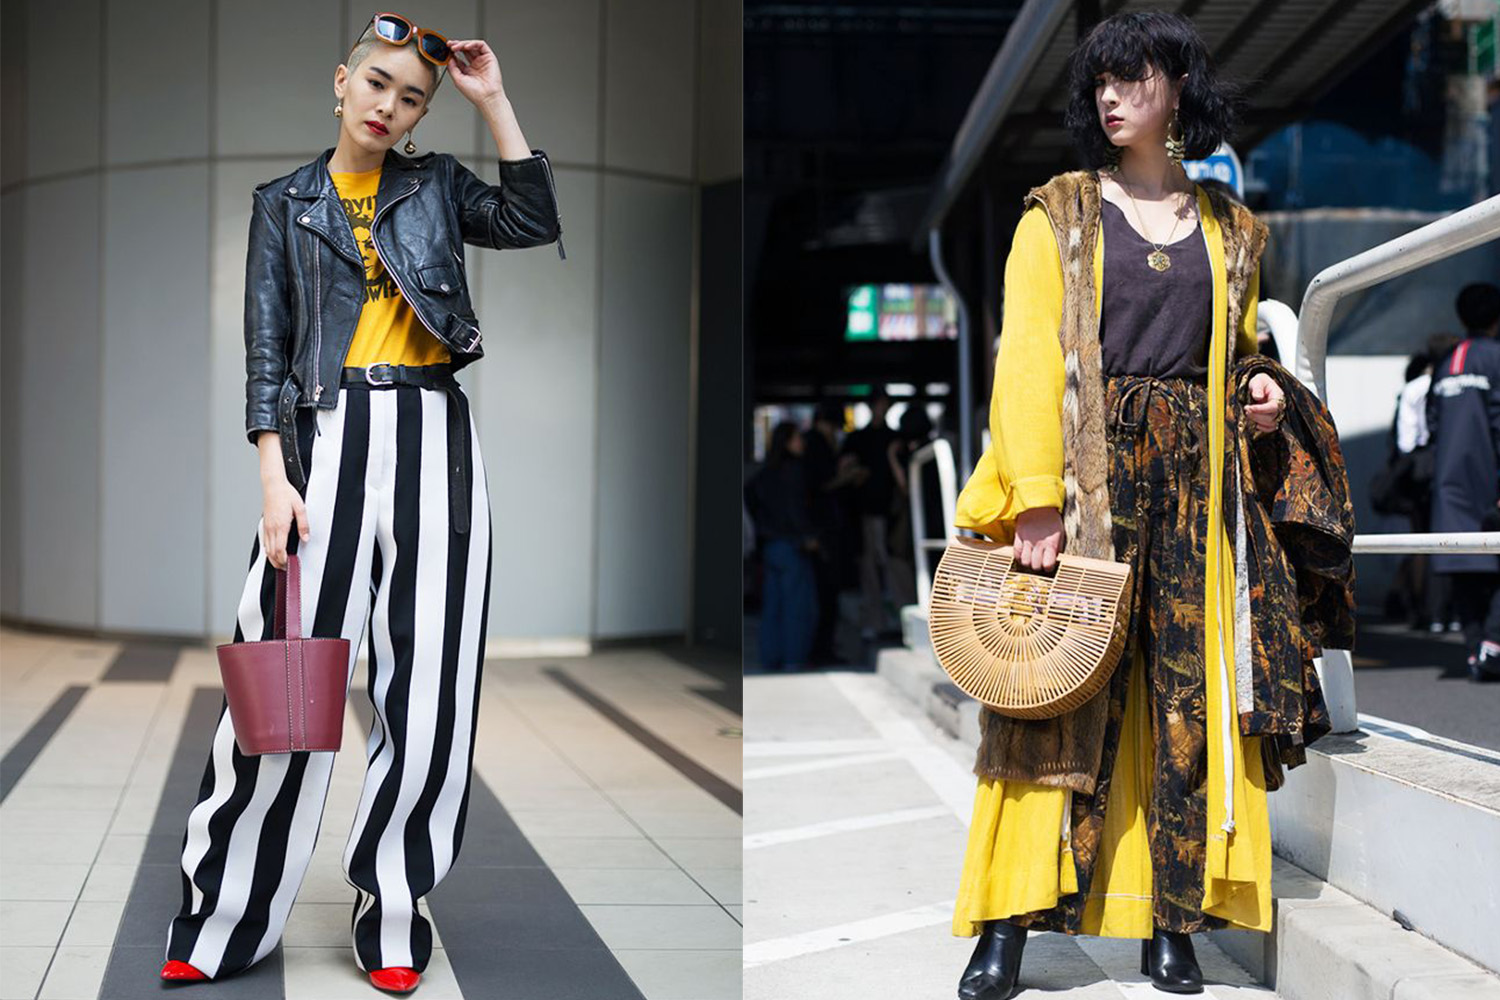 6 Japanese Fashion Trends Taking Over Tokyo